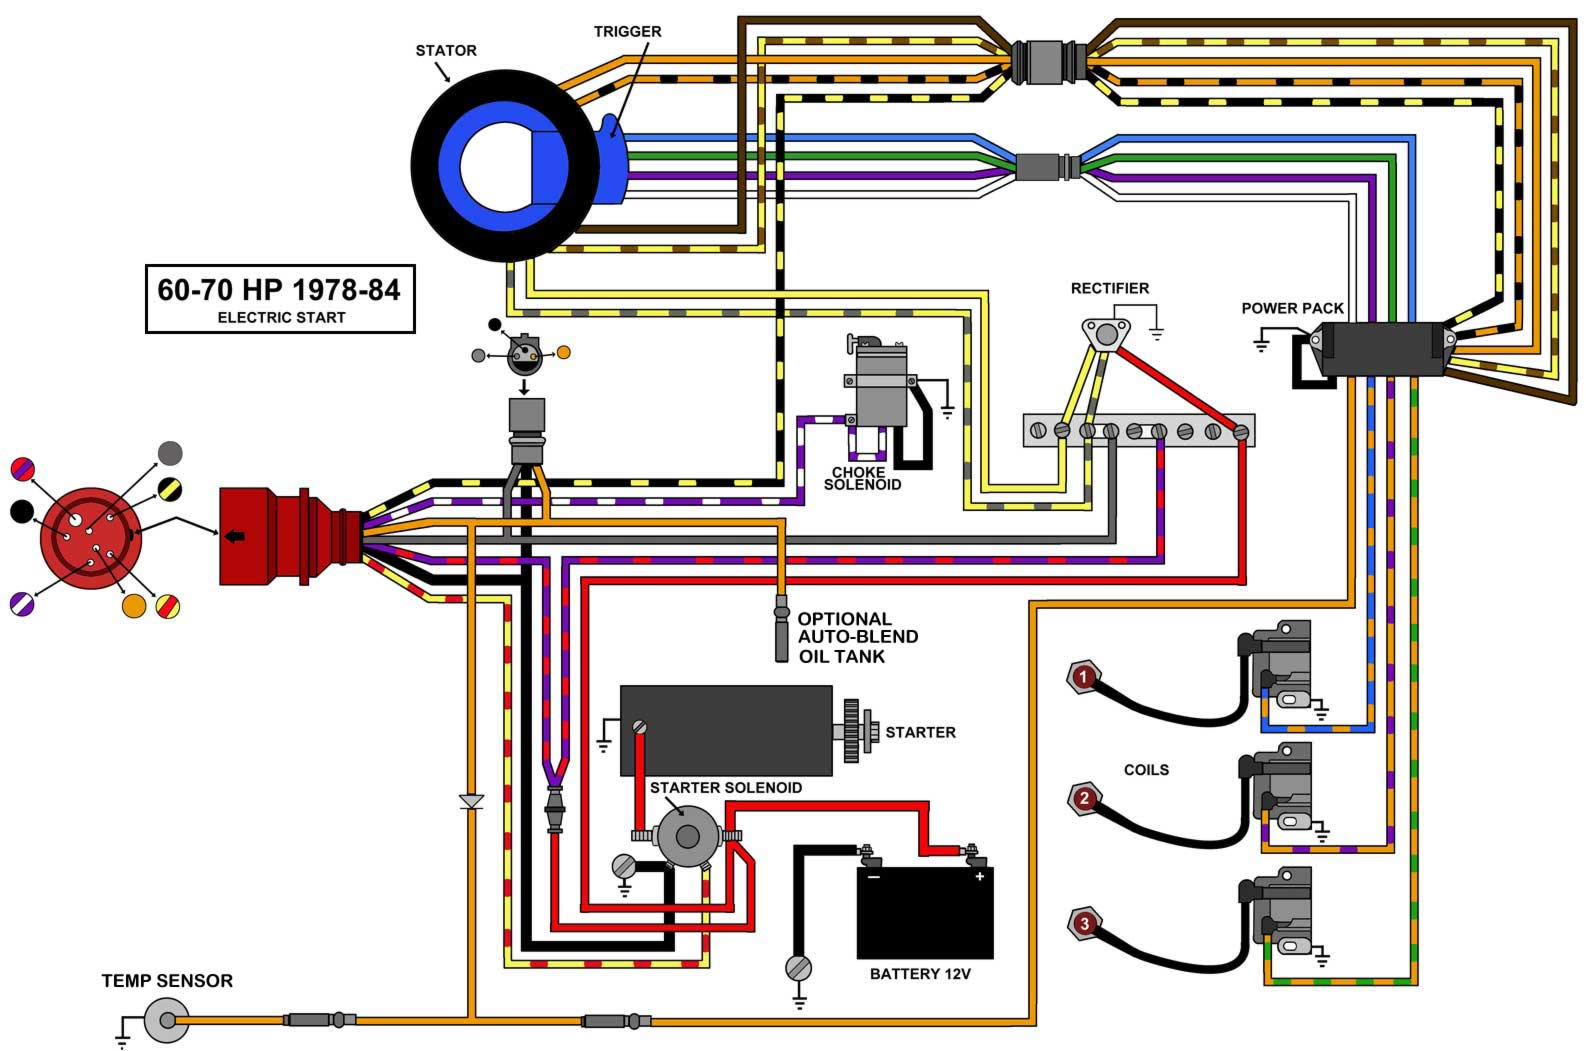 78 84_3 CYL_EL wiring tach from johnson controls page 1 iboats boating forums,Ground Wire Diagram Omc Co